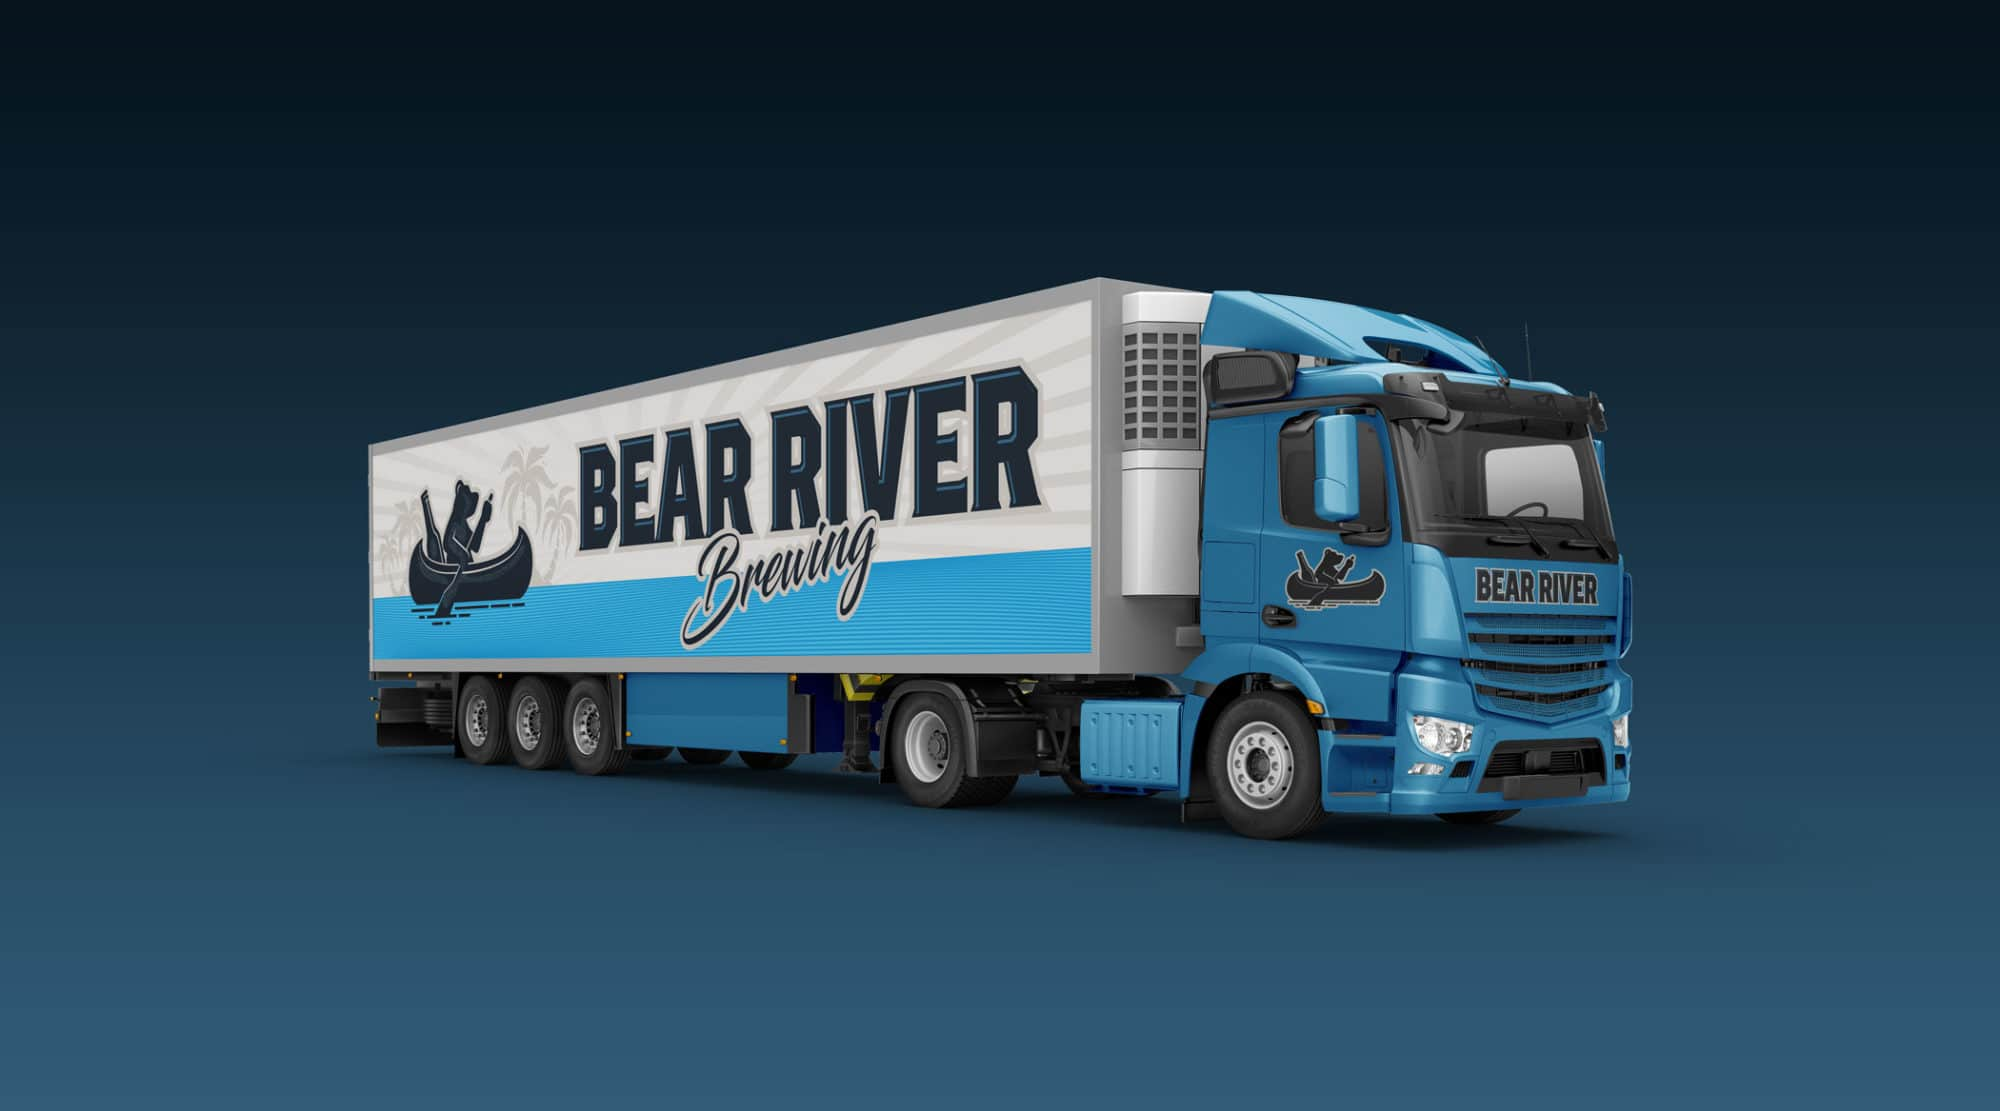 Bear River semi vehicle wrap design